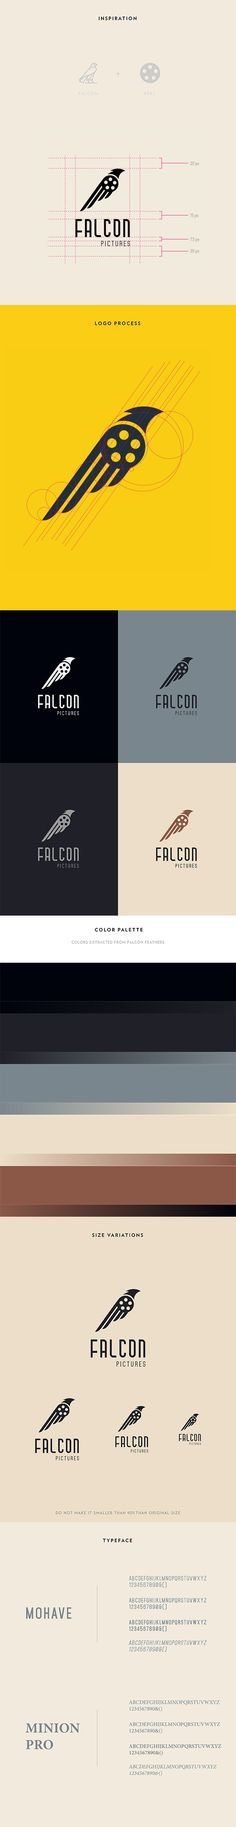 Falcon Pictures Logo Design on Behance